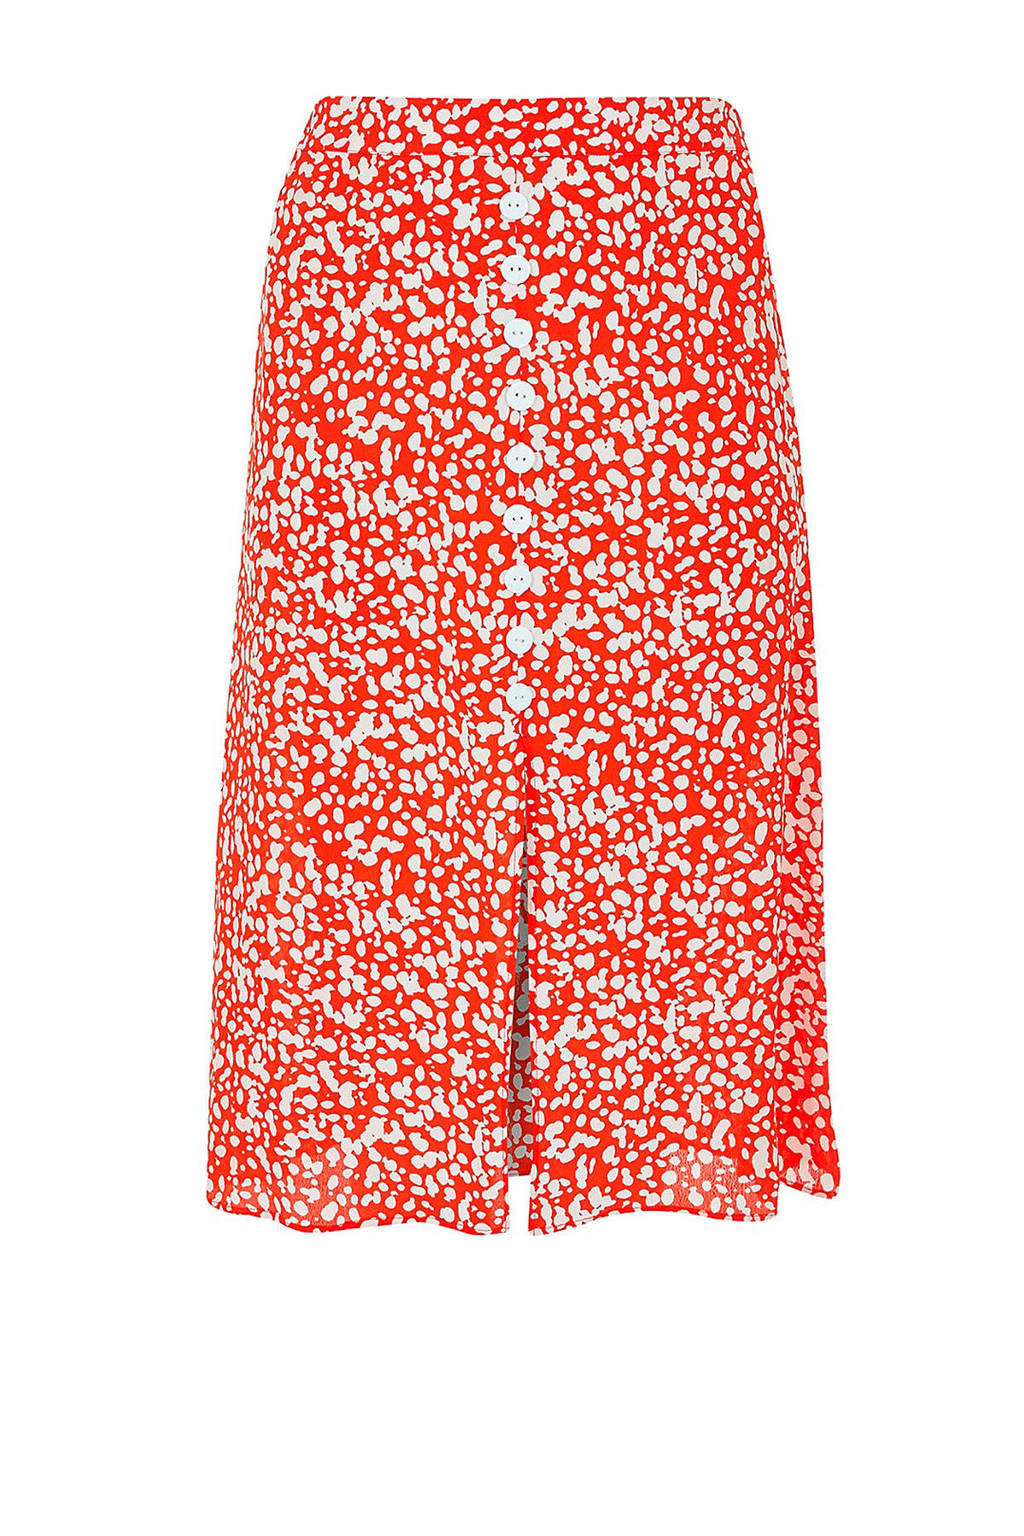 River Island Plus rok met all over print, Rood/wit